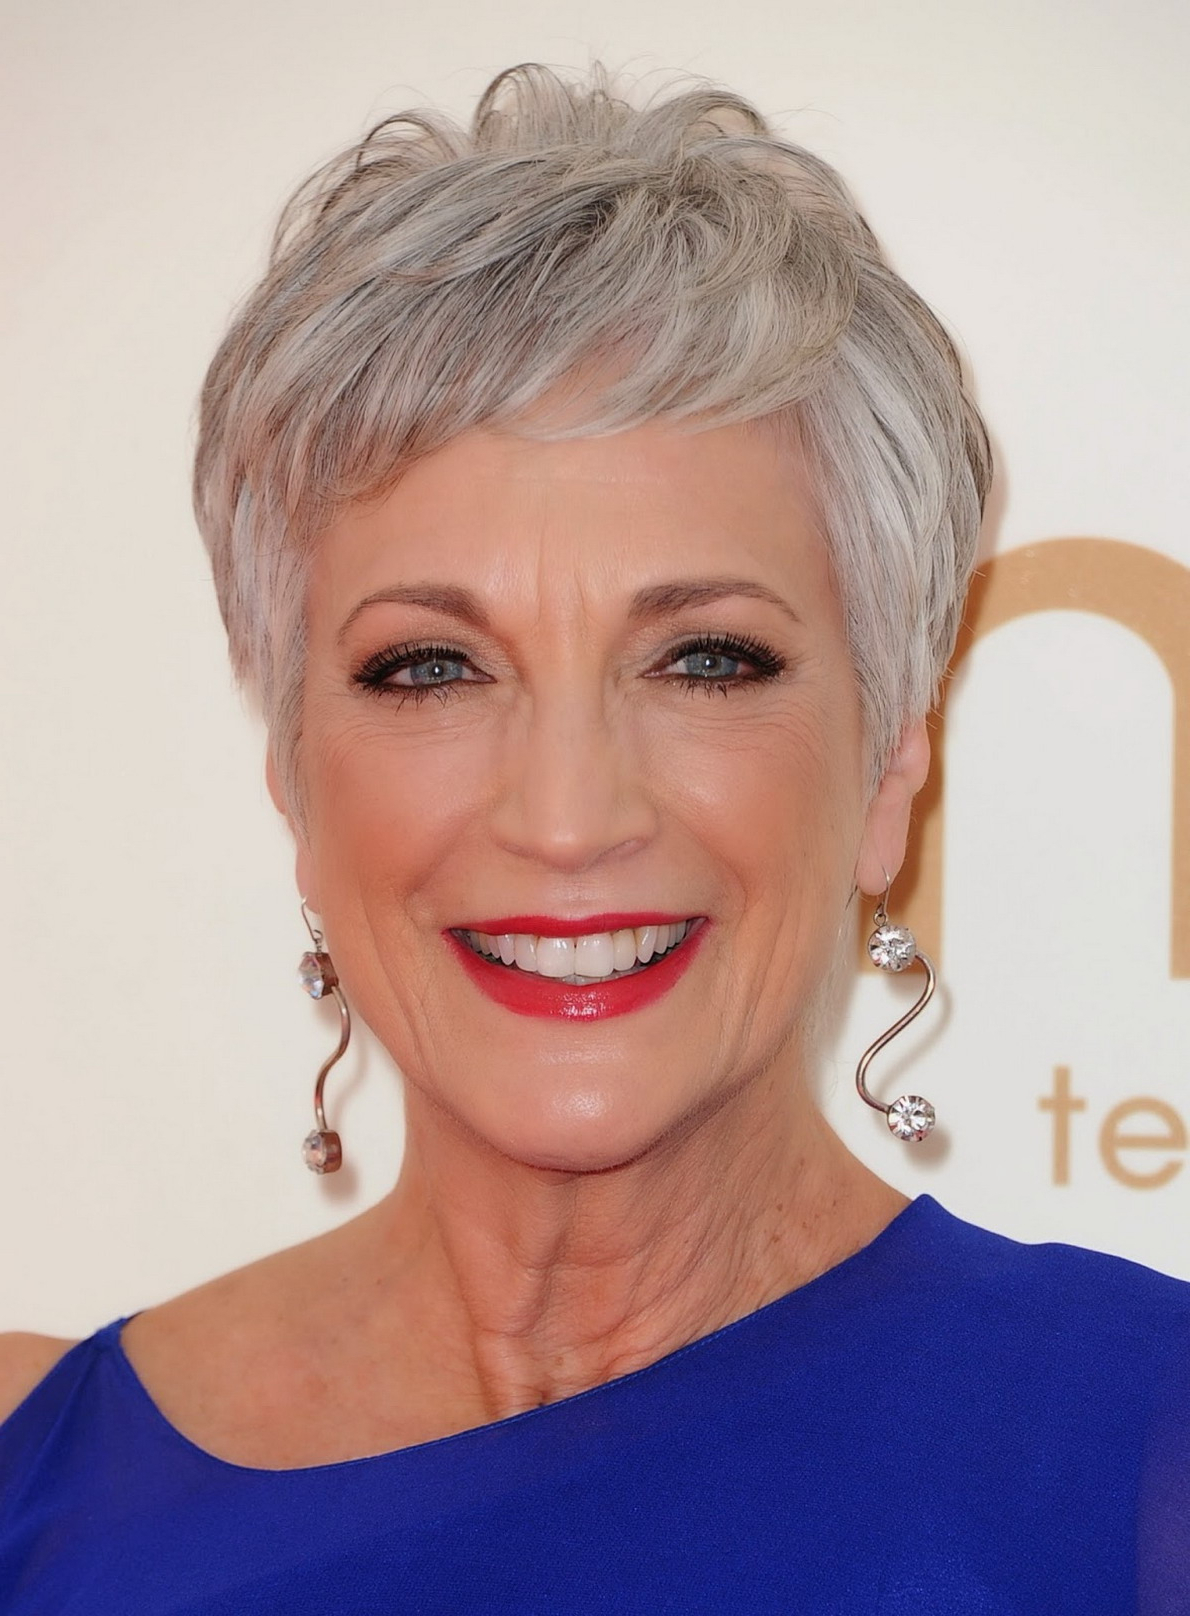 Short Haircuts Women Over 50 Very Short Hairstyles For Women Over 50 Throughout Hairstyles For Short Hair For Women Over  (View 10 of 25)